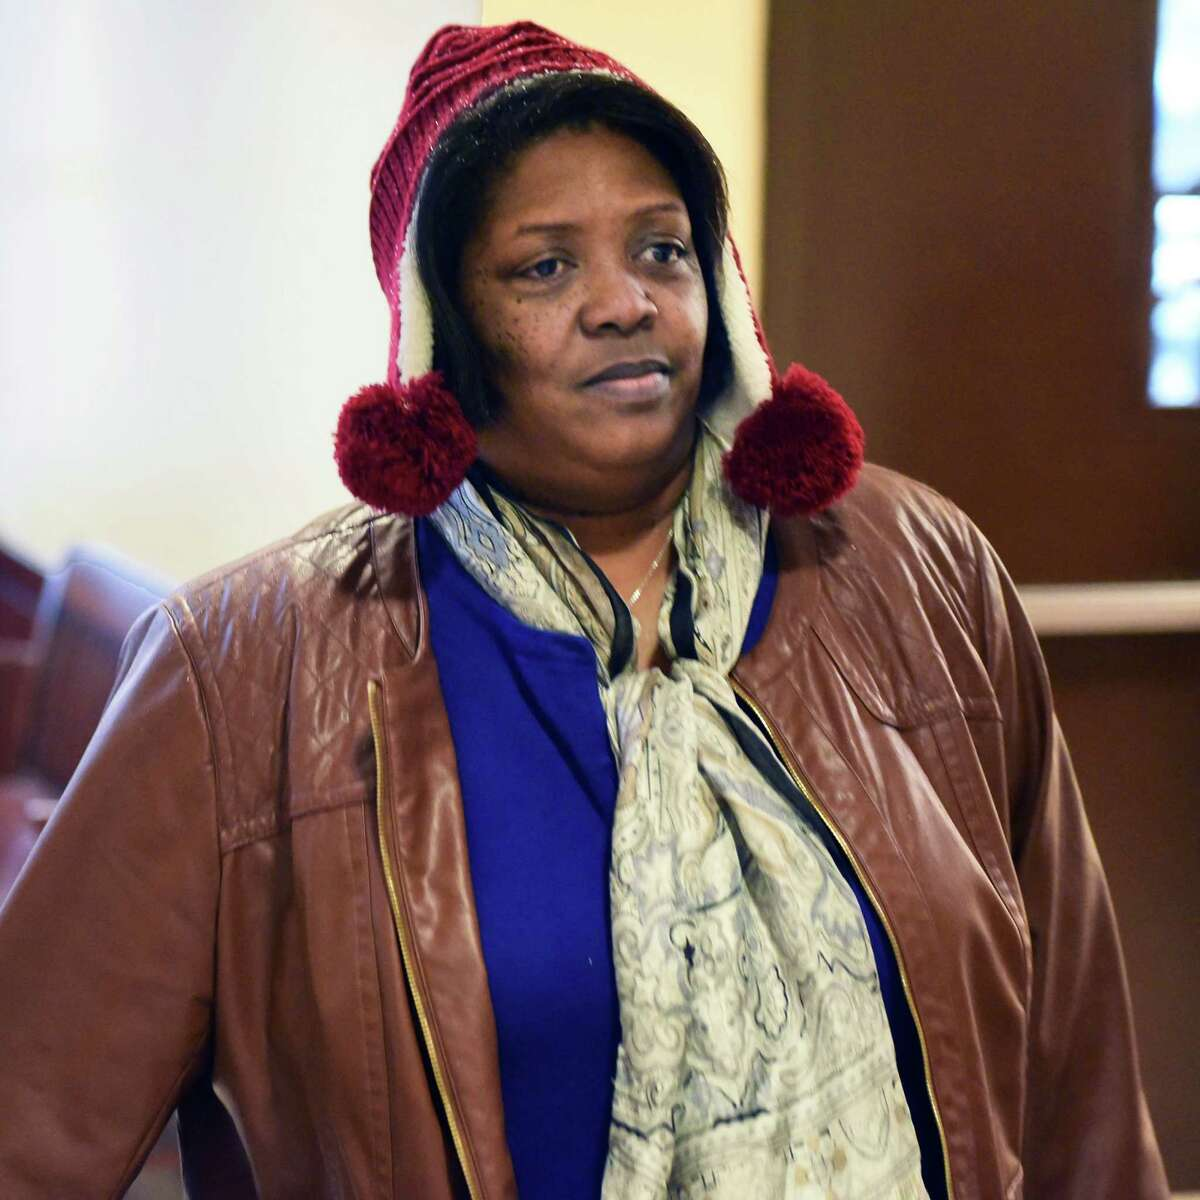 Marion Smart, wife of Rev. Edward B. Smart, who is pastor of First Israel African Methodist Episcopal Church, arrives at the Albany Judicial Center where she and her husband surrendered to authorities Thursday Oct. 27, 2016 in Albany, NY. (John Carl D'Annibale / Times Union)